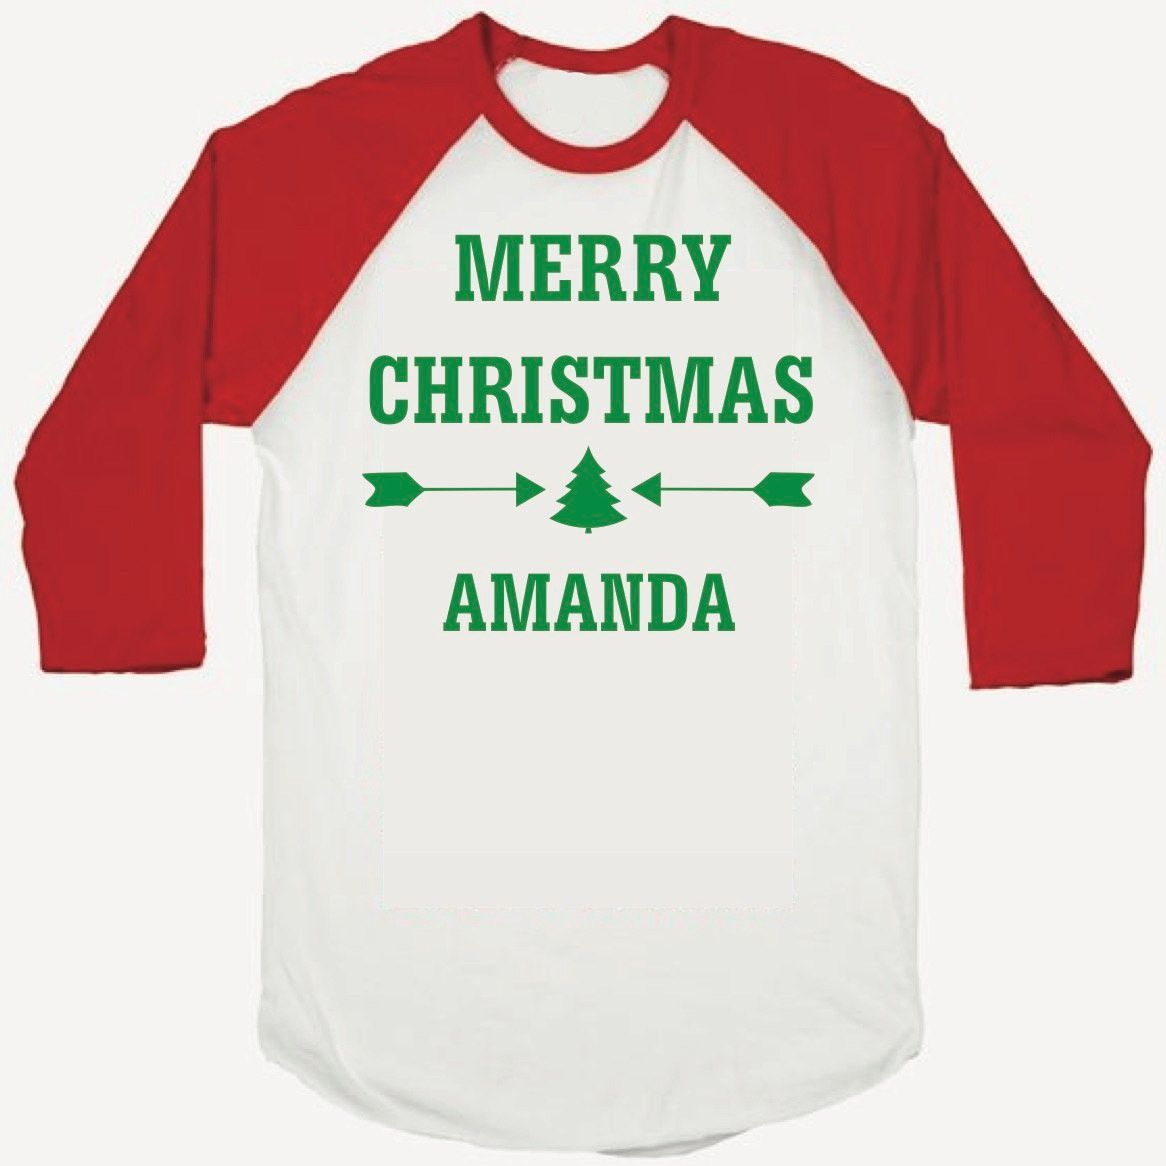 First Christmas Shirt, Personalized Christmas Shirt, Toddler Christmas Outfit, Christmas Name Shirt, Baby Christmas Shirt 021